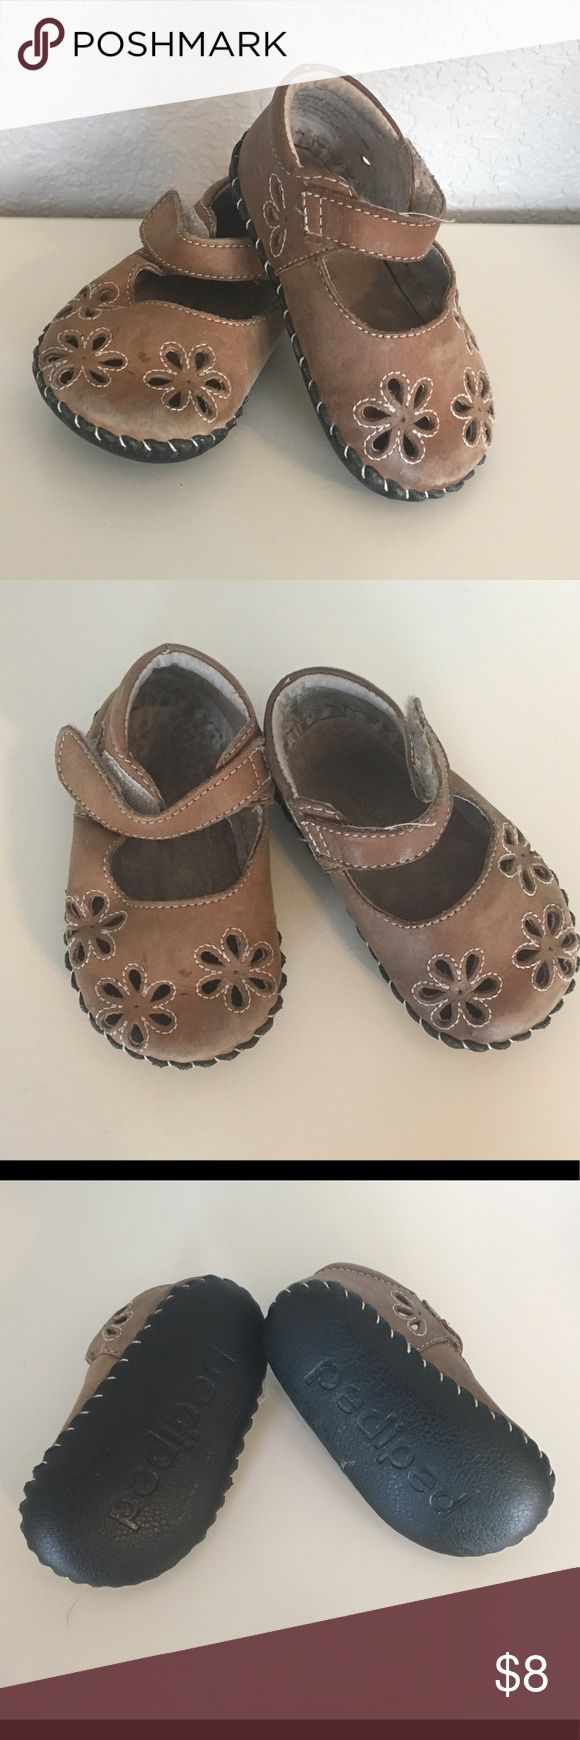 Pediped 6-12 month Mary Janes Timeless brown Pediped Mary Janes.  These go with everything and are extremely comfortable and supportive for little feet.  Worn a lot but have lots of life left.  See pictures for toe wear from my crawler.  Offers always welcome and bundle your likes for the best deals. pediped Shoes Baby & Walker